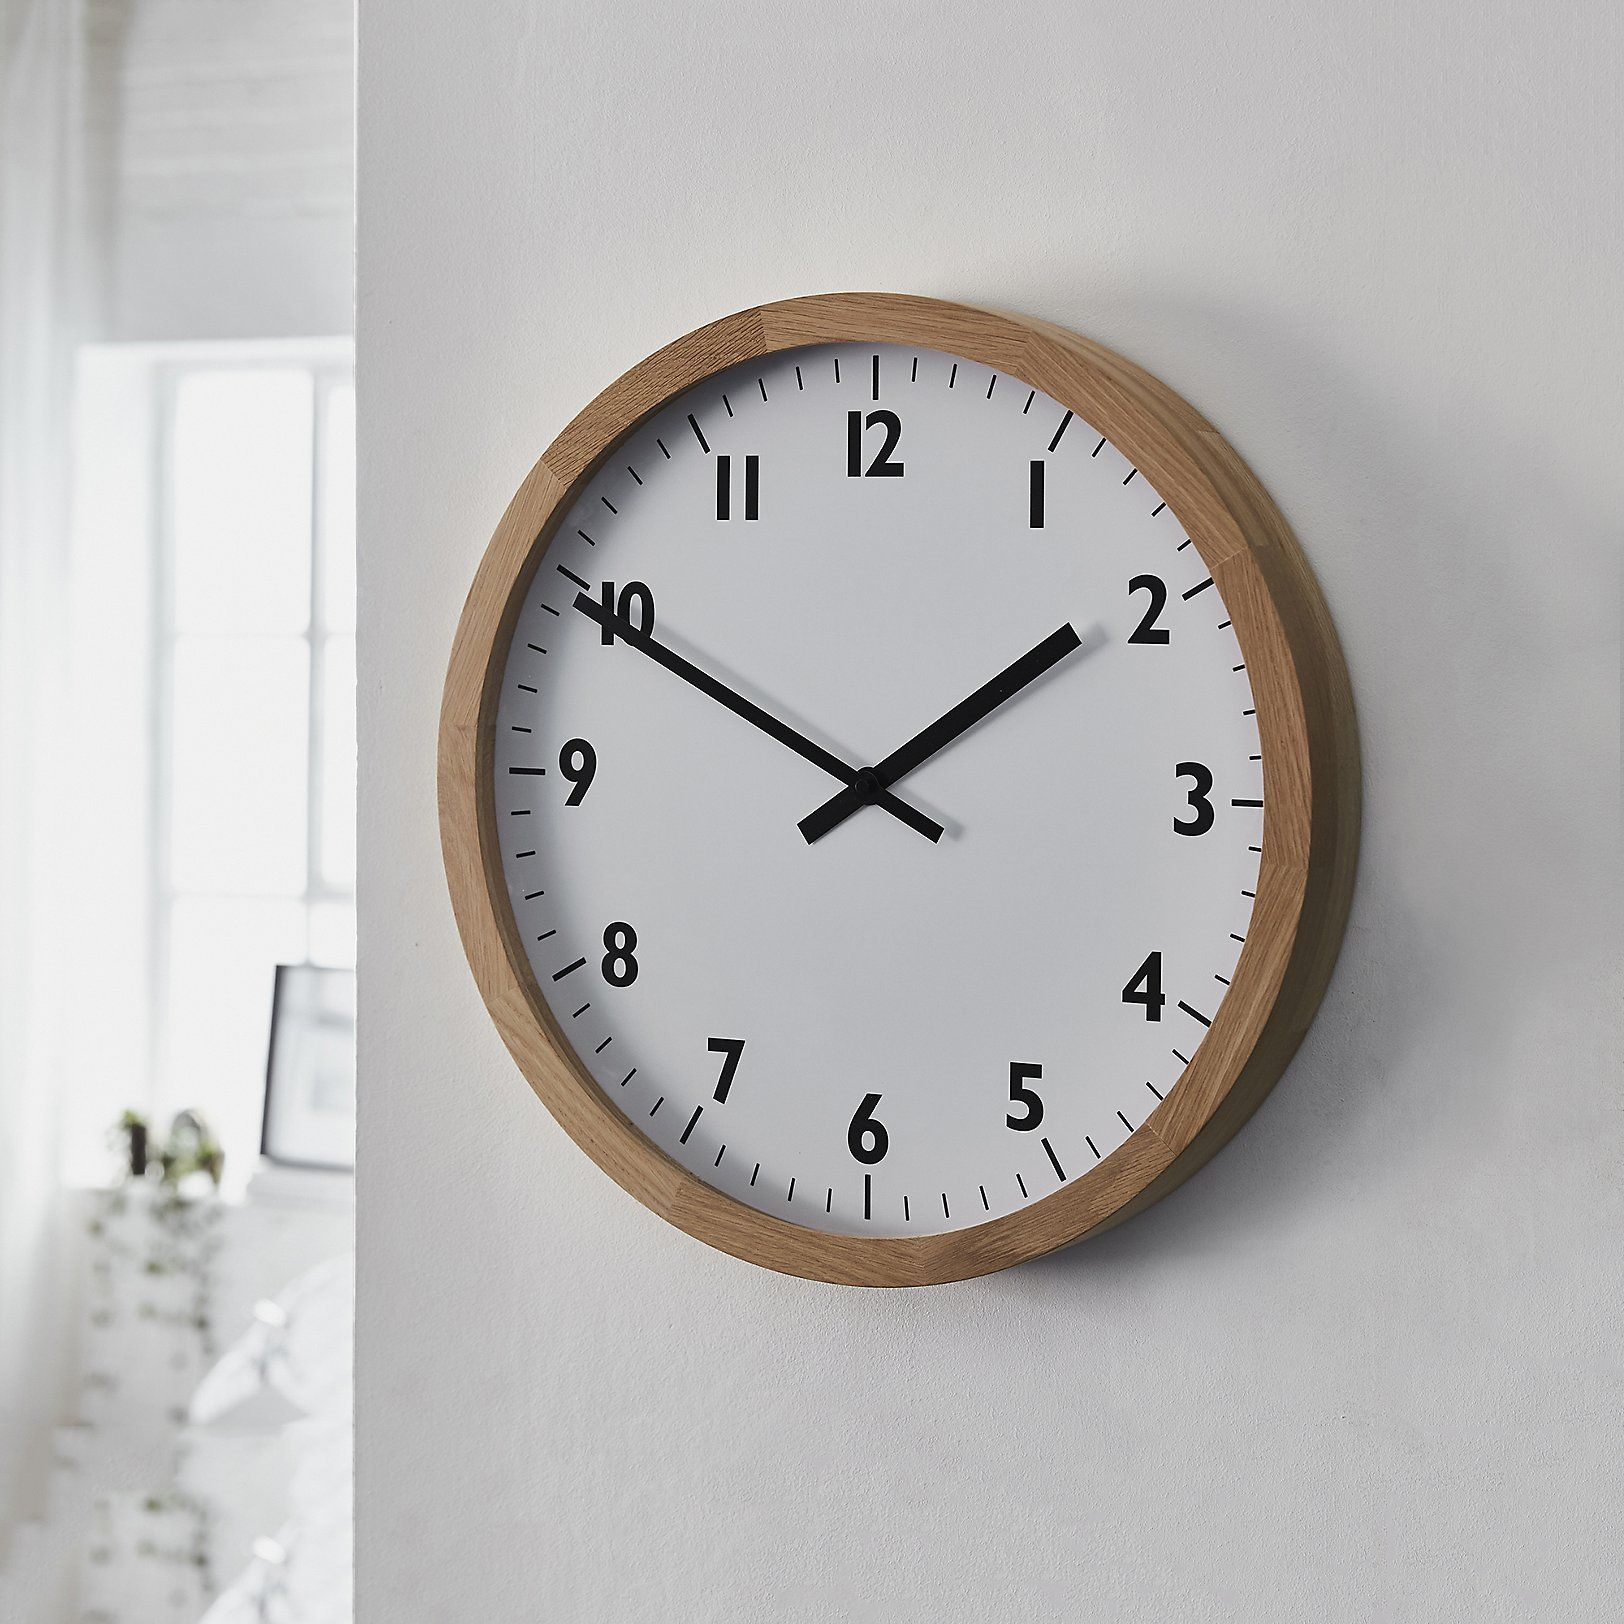 Oak Wall Clock Small Decorative Accessories Home The White Company Uk